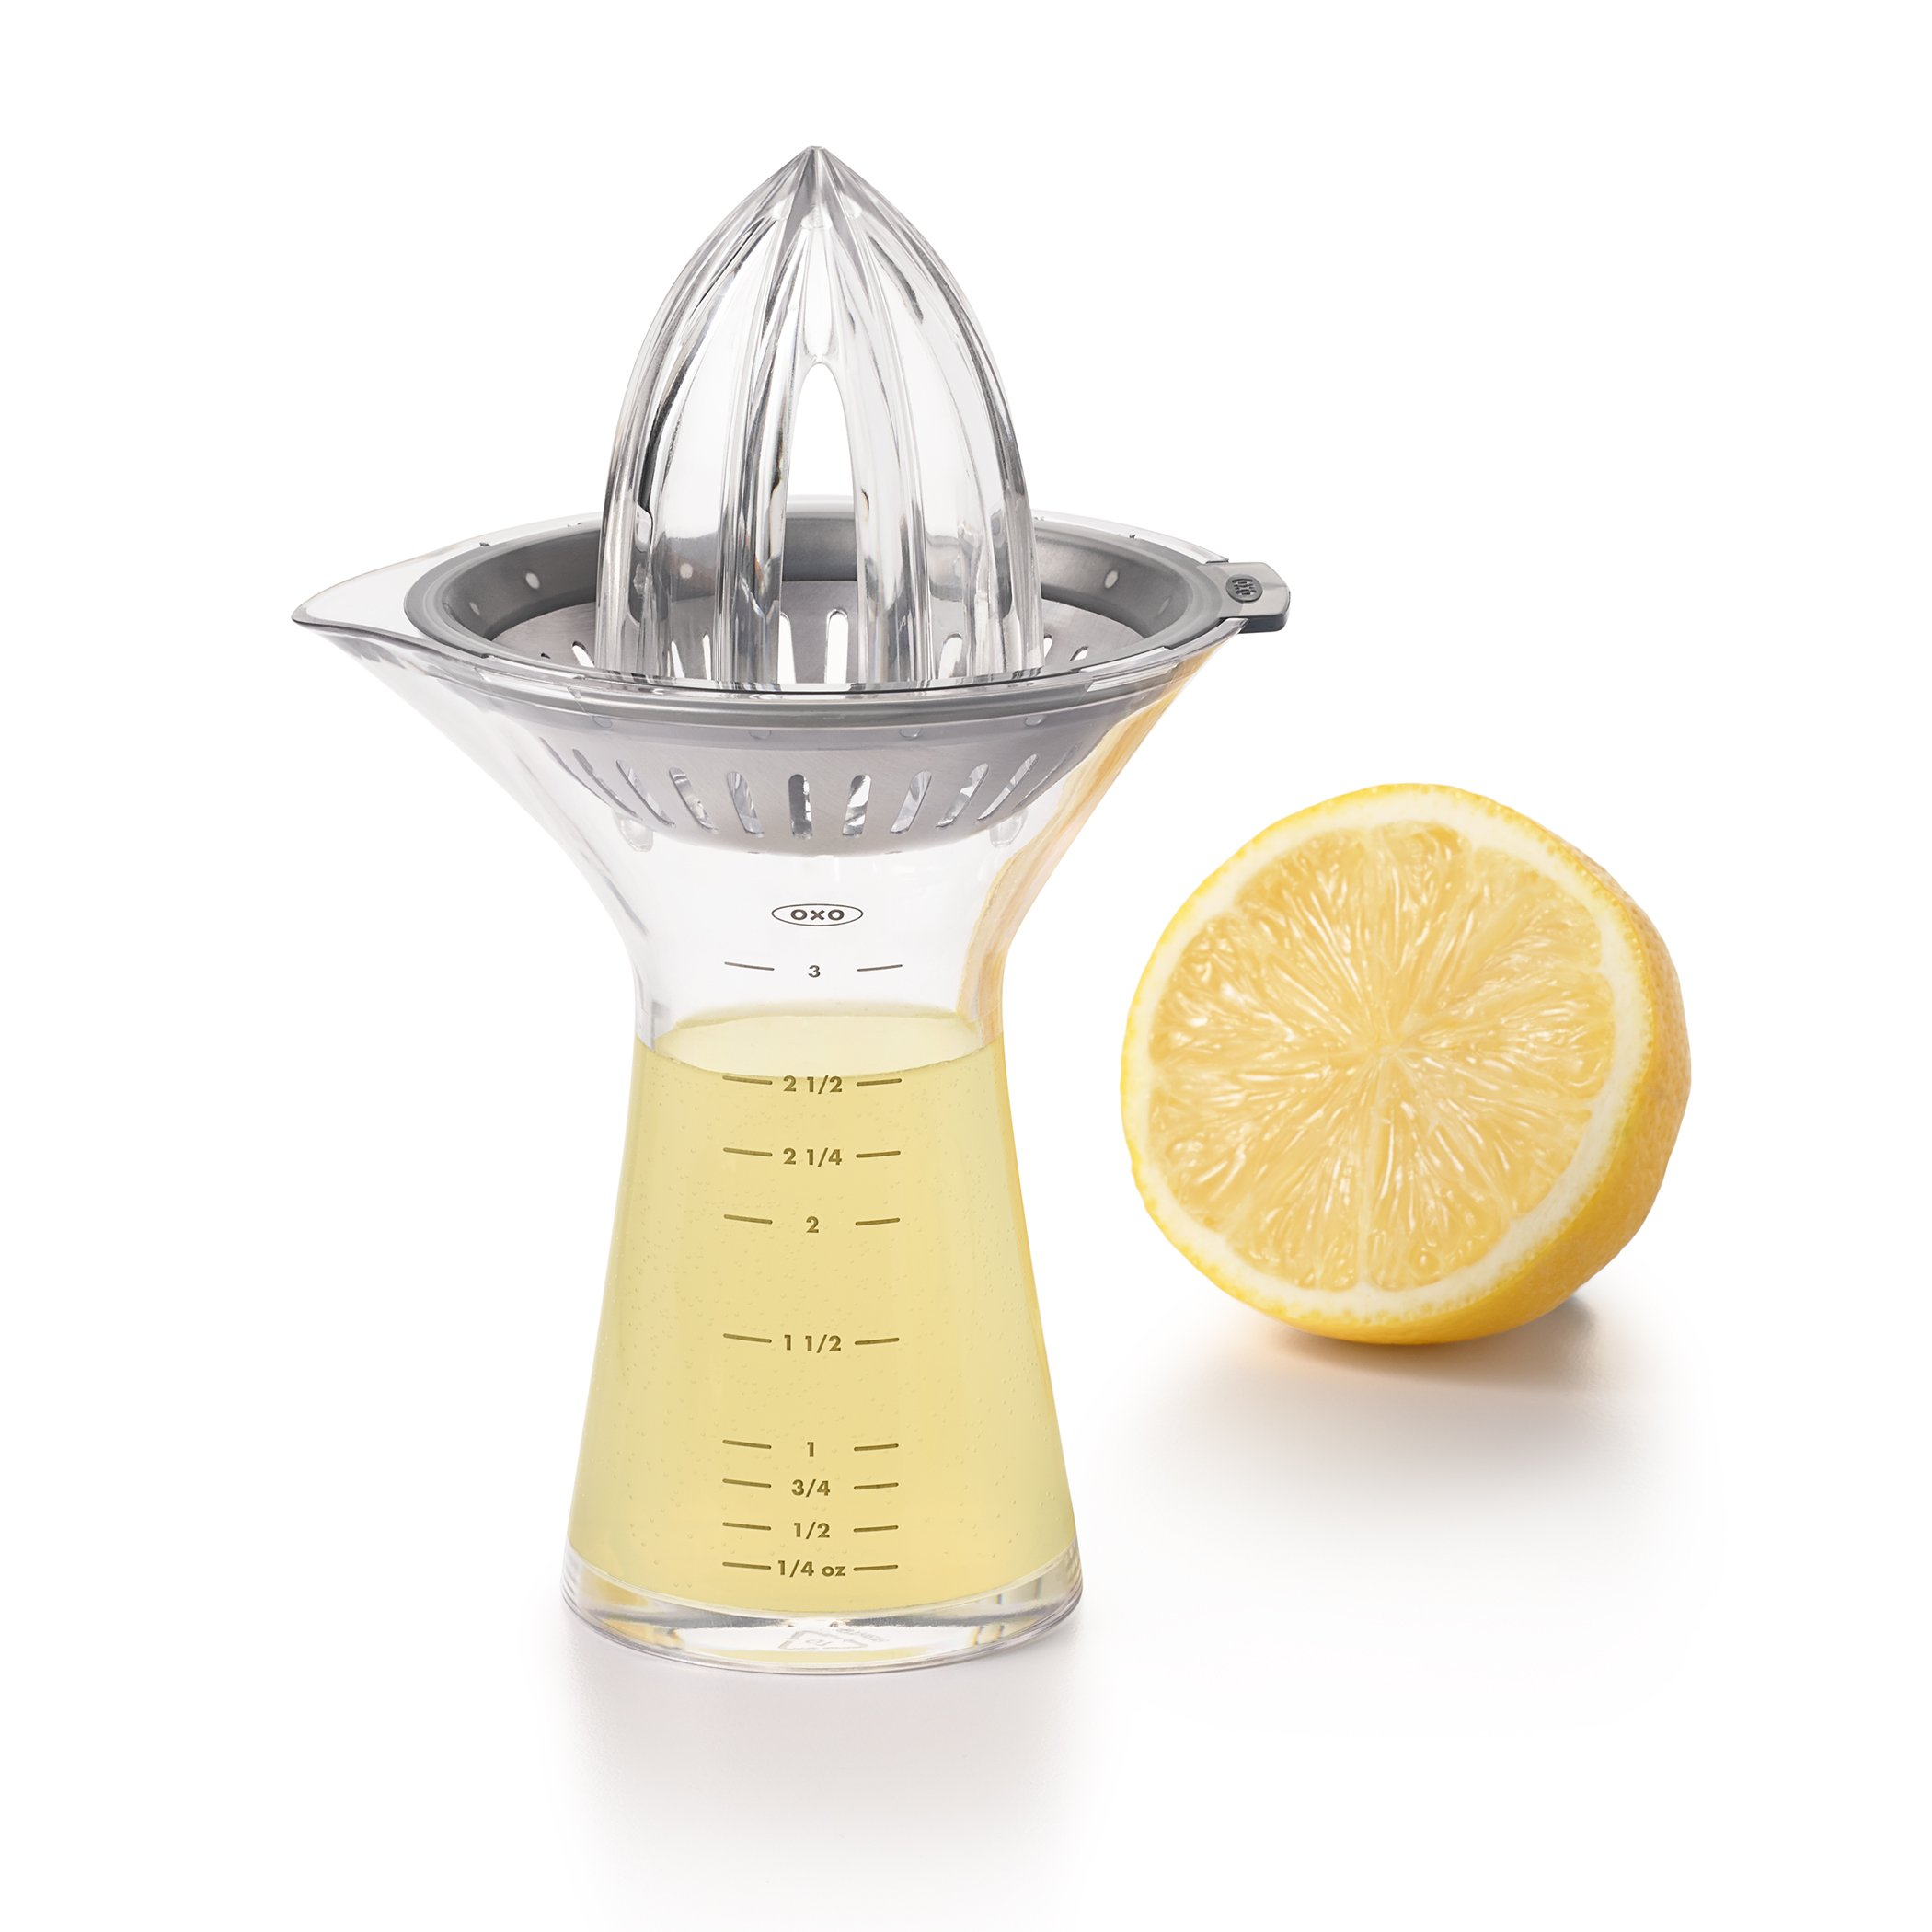 OXO SteeL Small Citrus Juicer with Built-In Measuring Cup and Strainer by OXO (Image #1)